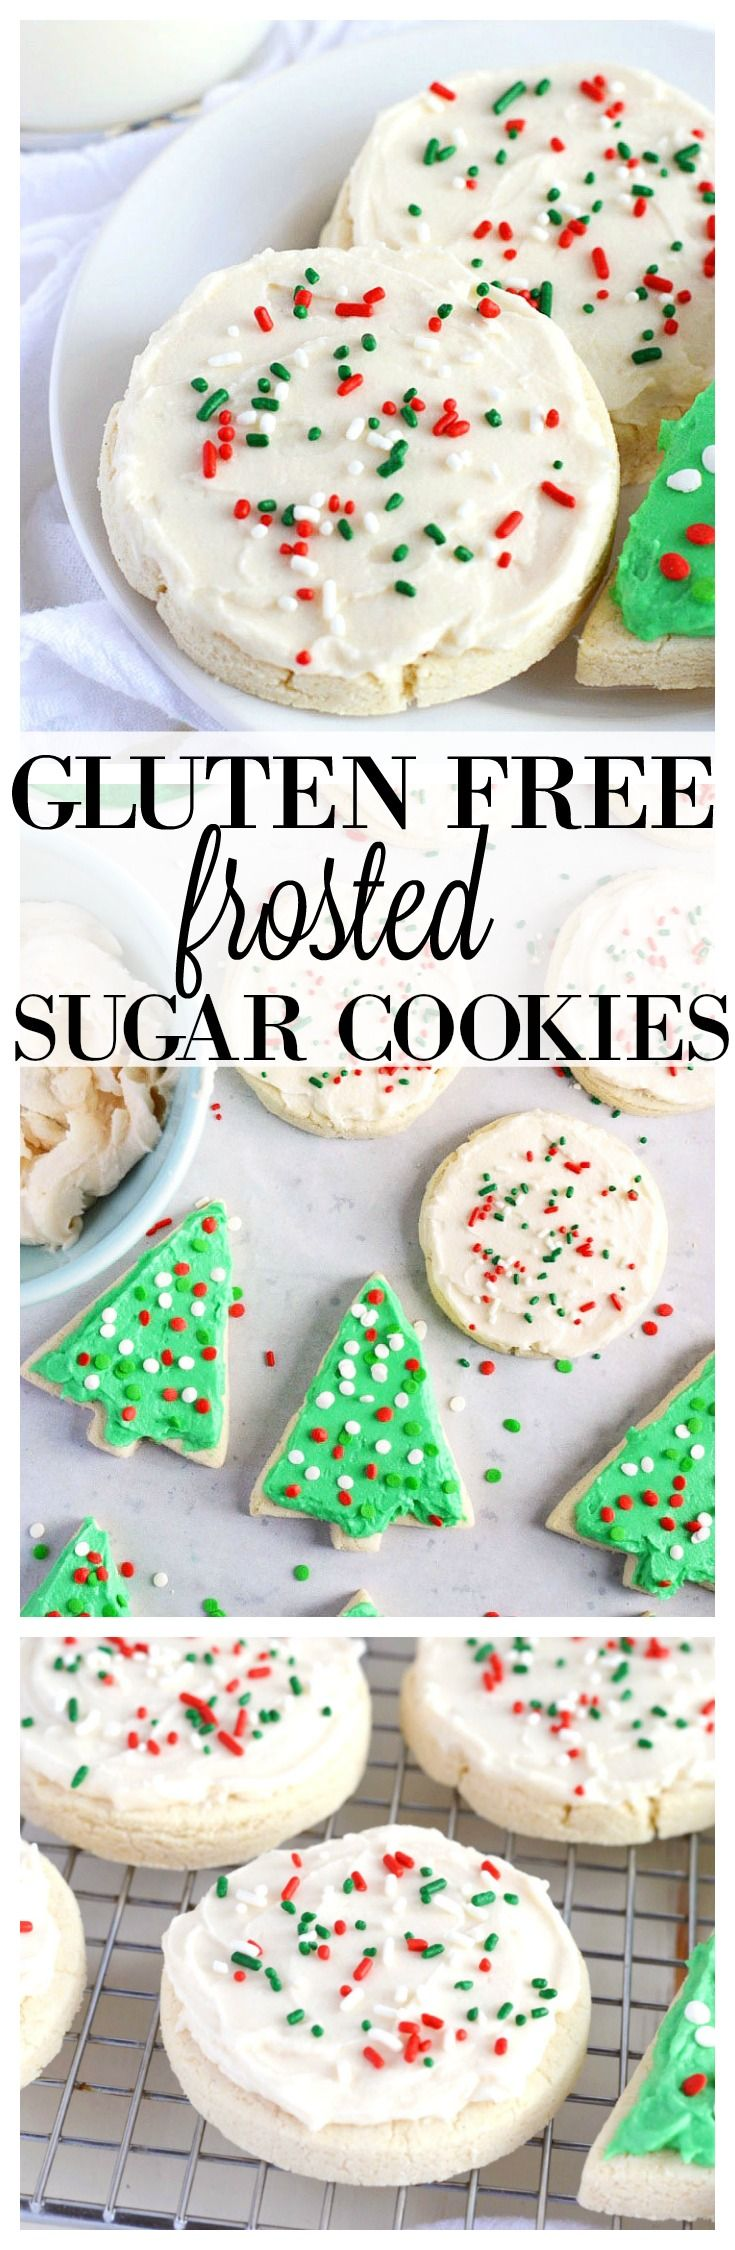 These Gluten Free Frosted Sugar Cookies are a must-make this holiday season. Gift them, leave them on a plate for Santa, or hoard them for yourself. Baking cookies have always been a big part of my family's holiday tradition. Cookies after cookies, fudge after batch of fudge, and gingerbread house after gingerbread house. It was...Read More »